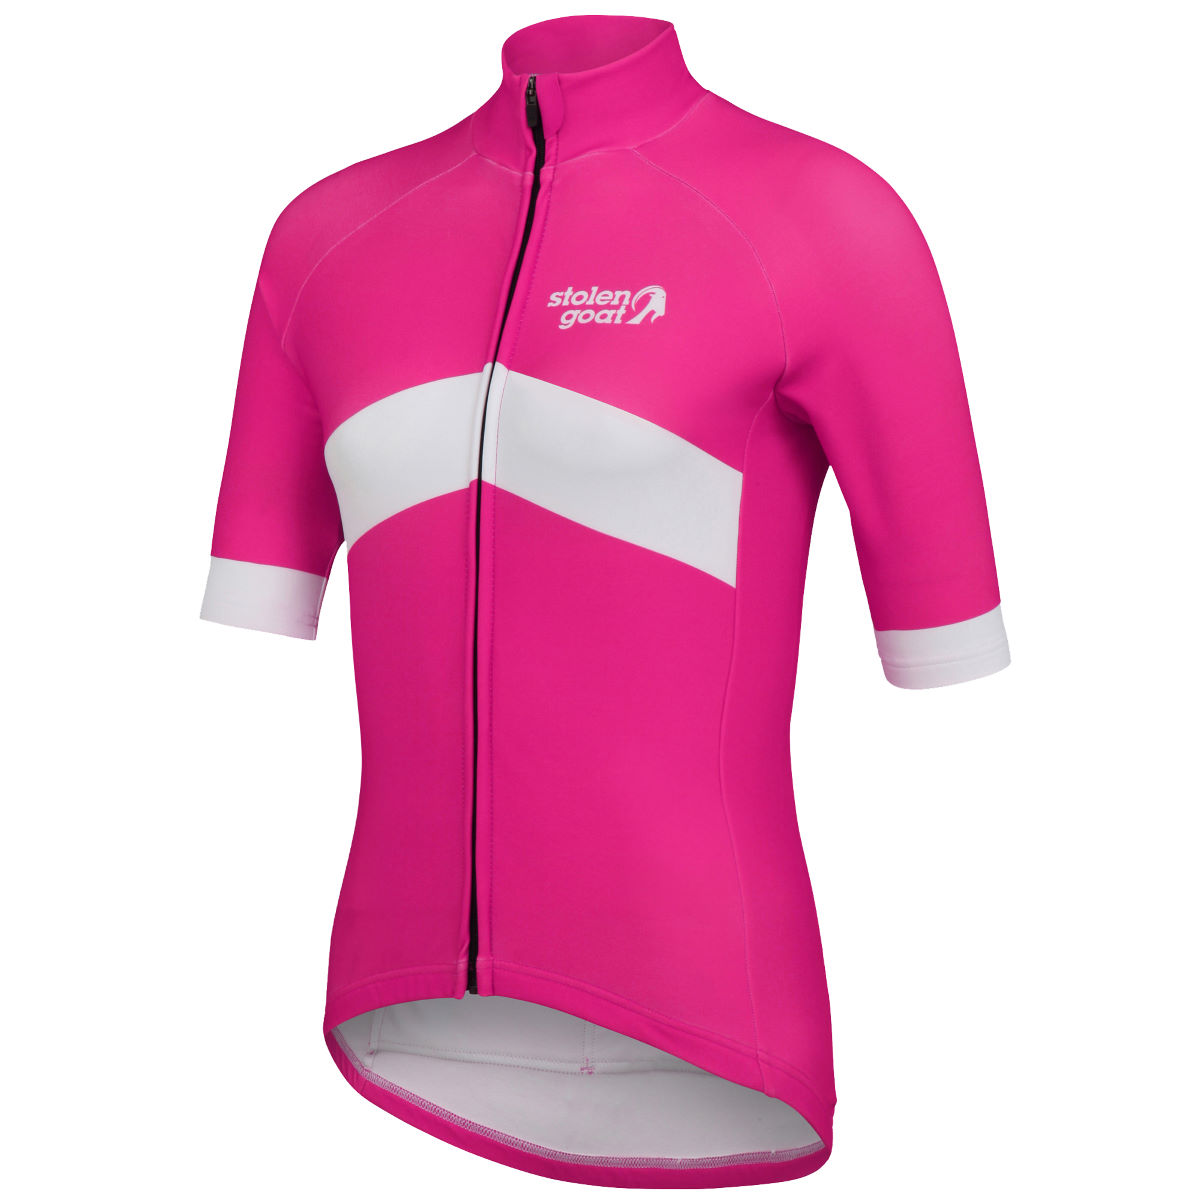 Image of Maillot Femme Stolen Goat Orkaan Everyday (manches courtes) - XL